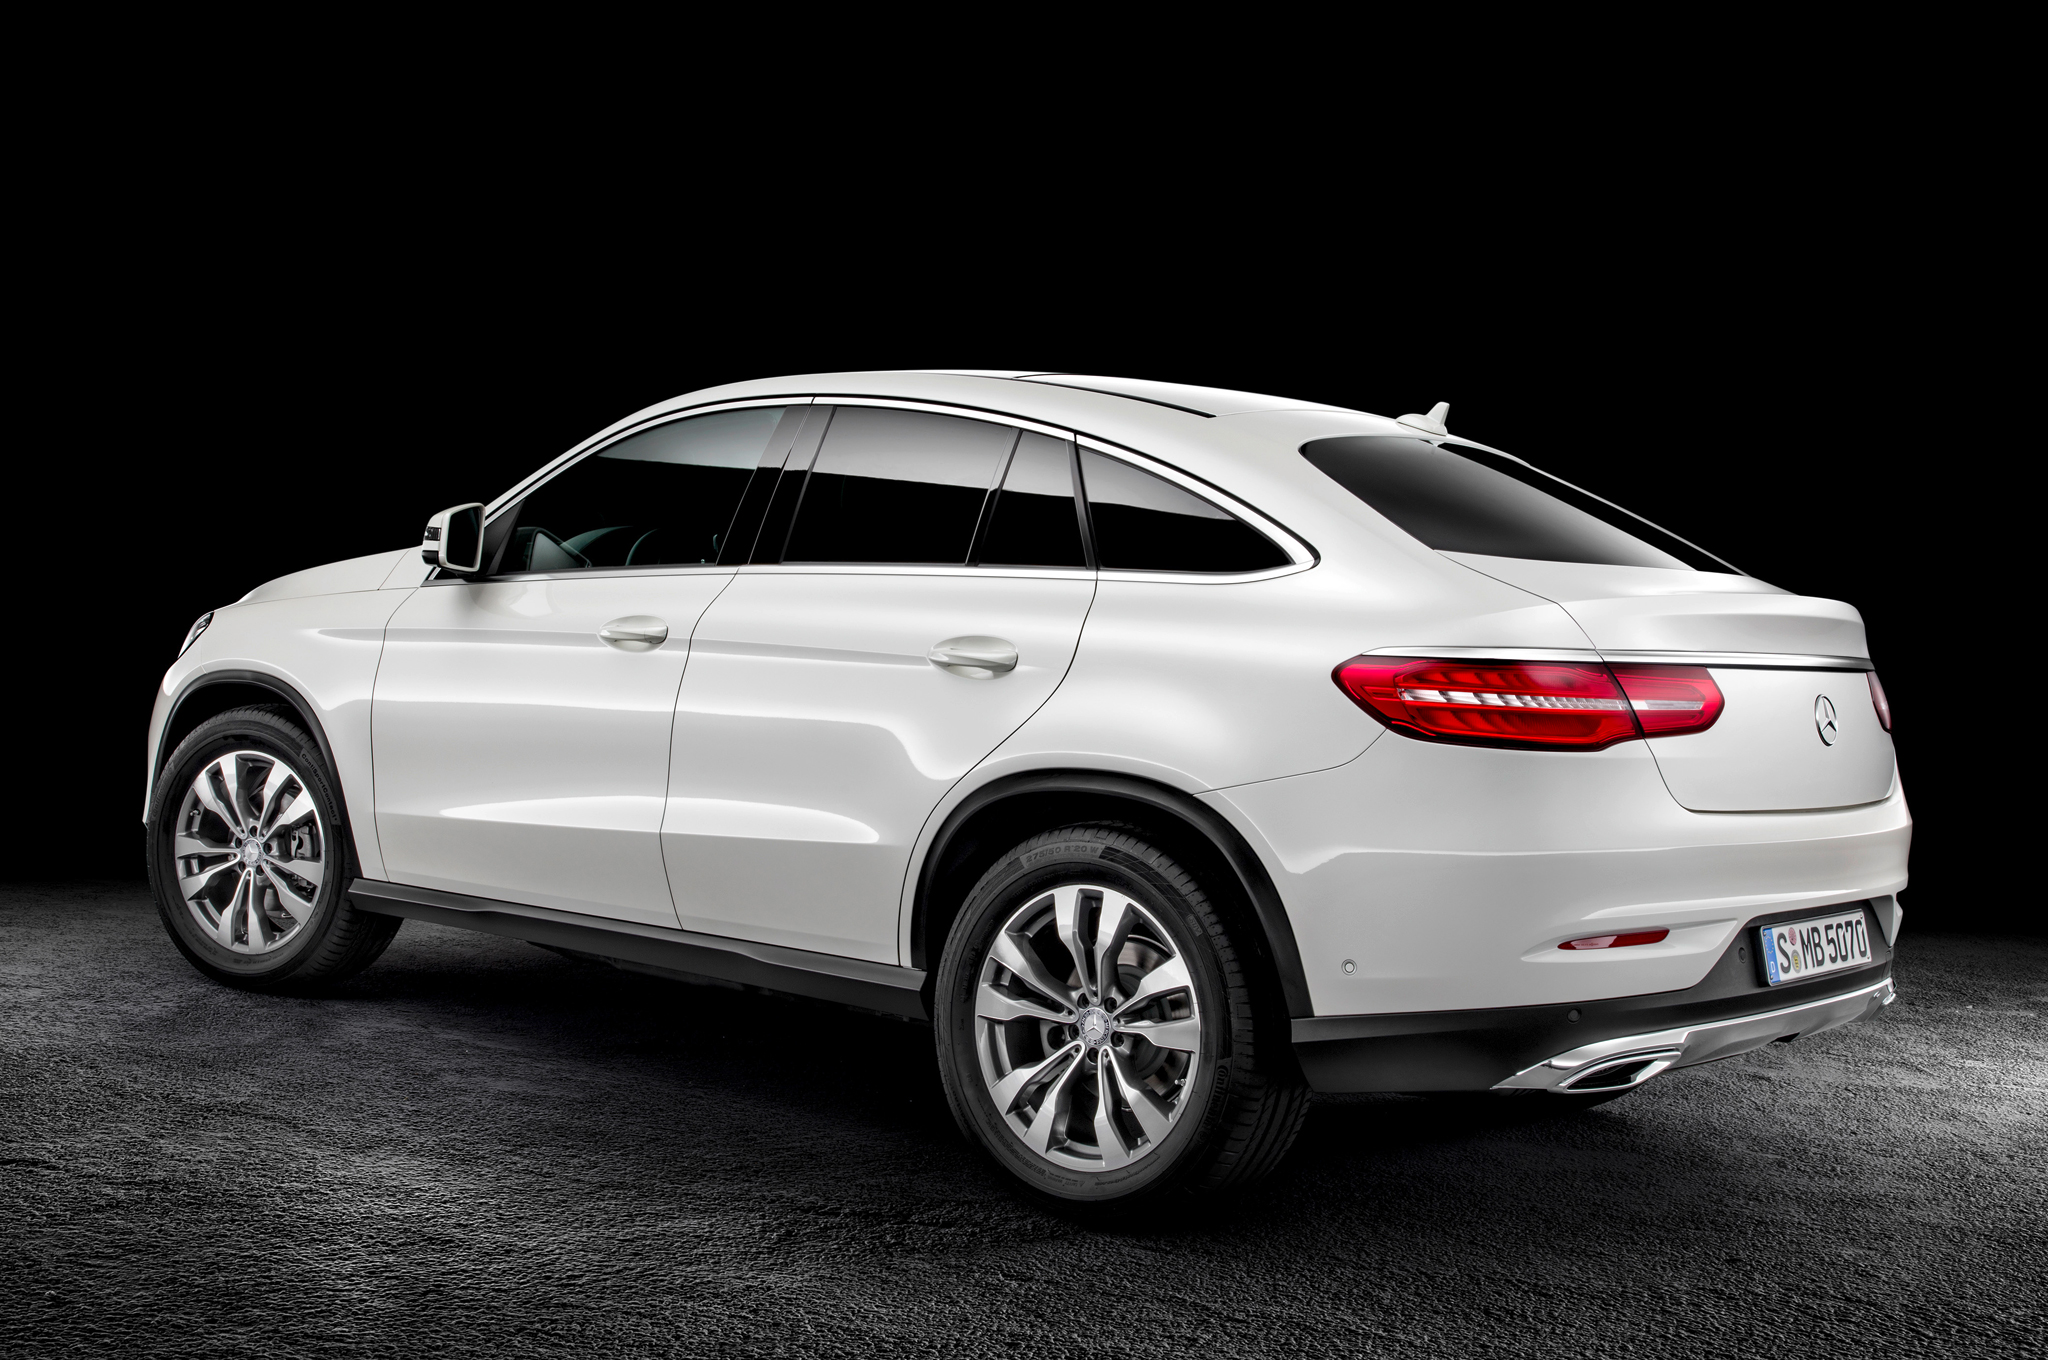 Next 2016 Mercedes Benz AMG GLE63s Coupe